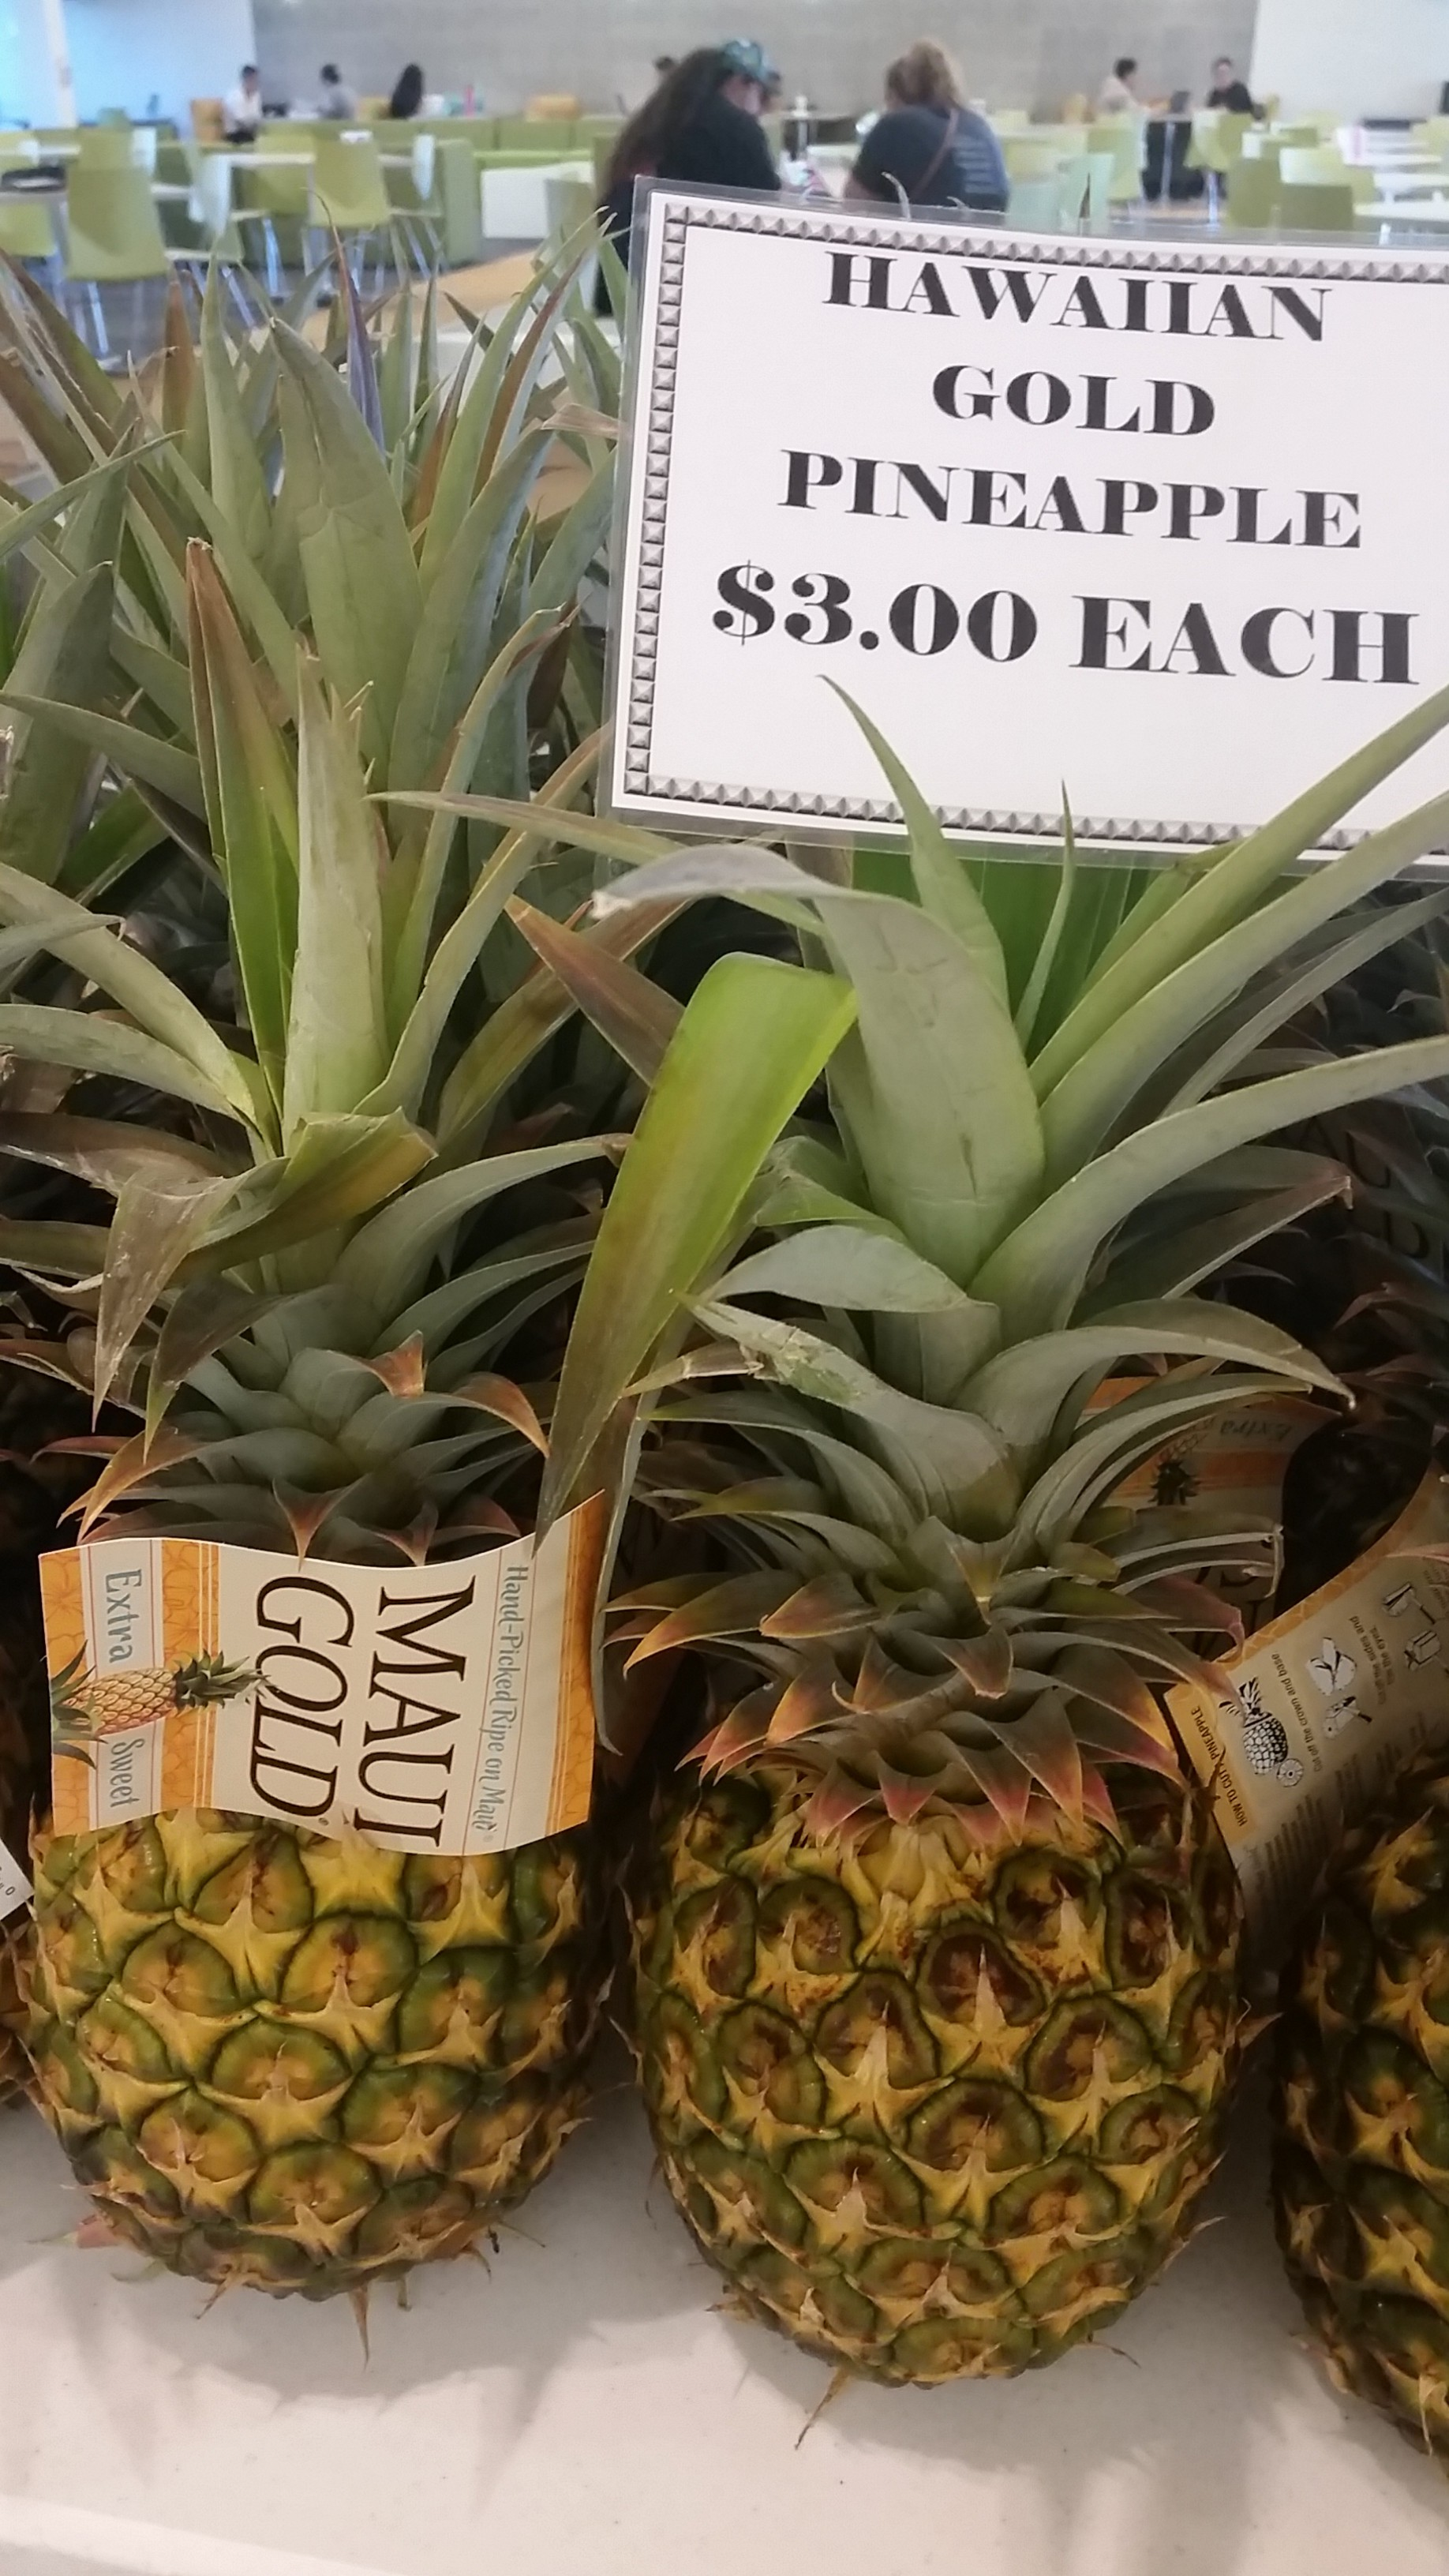 Farmers' Market pineapple